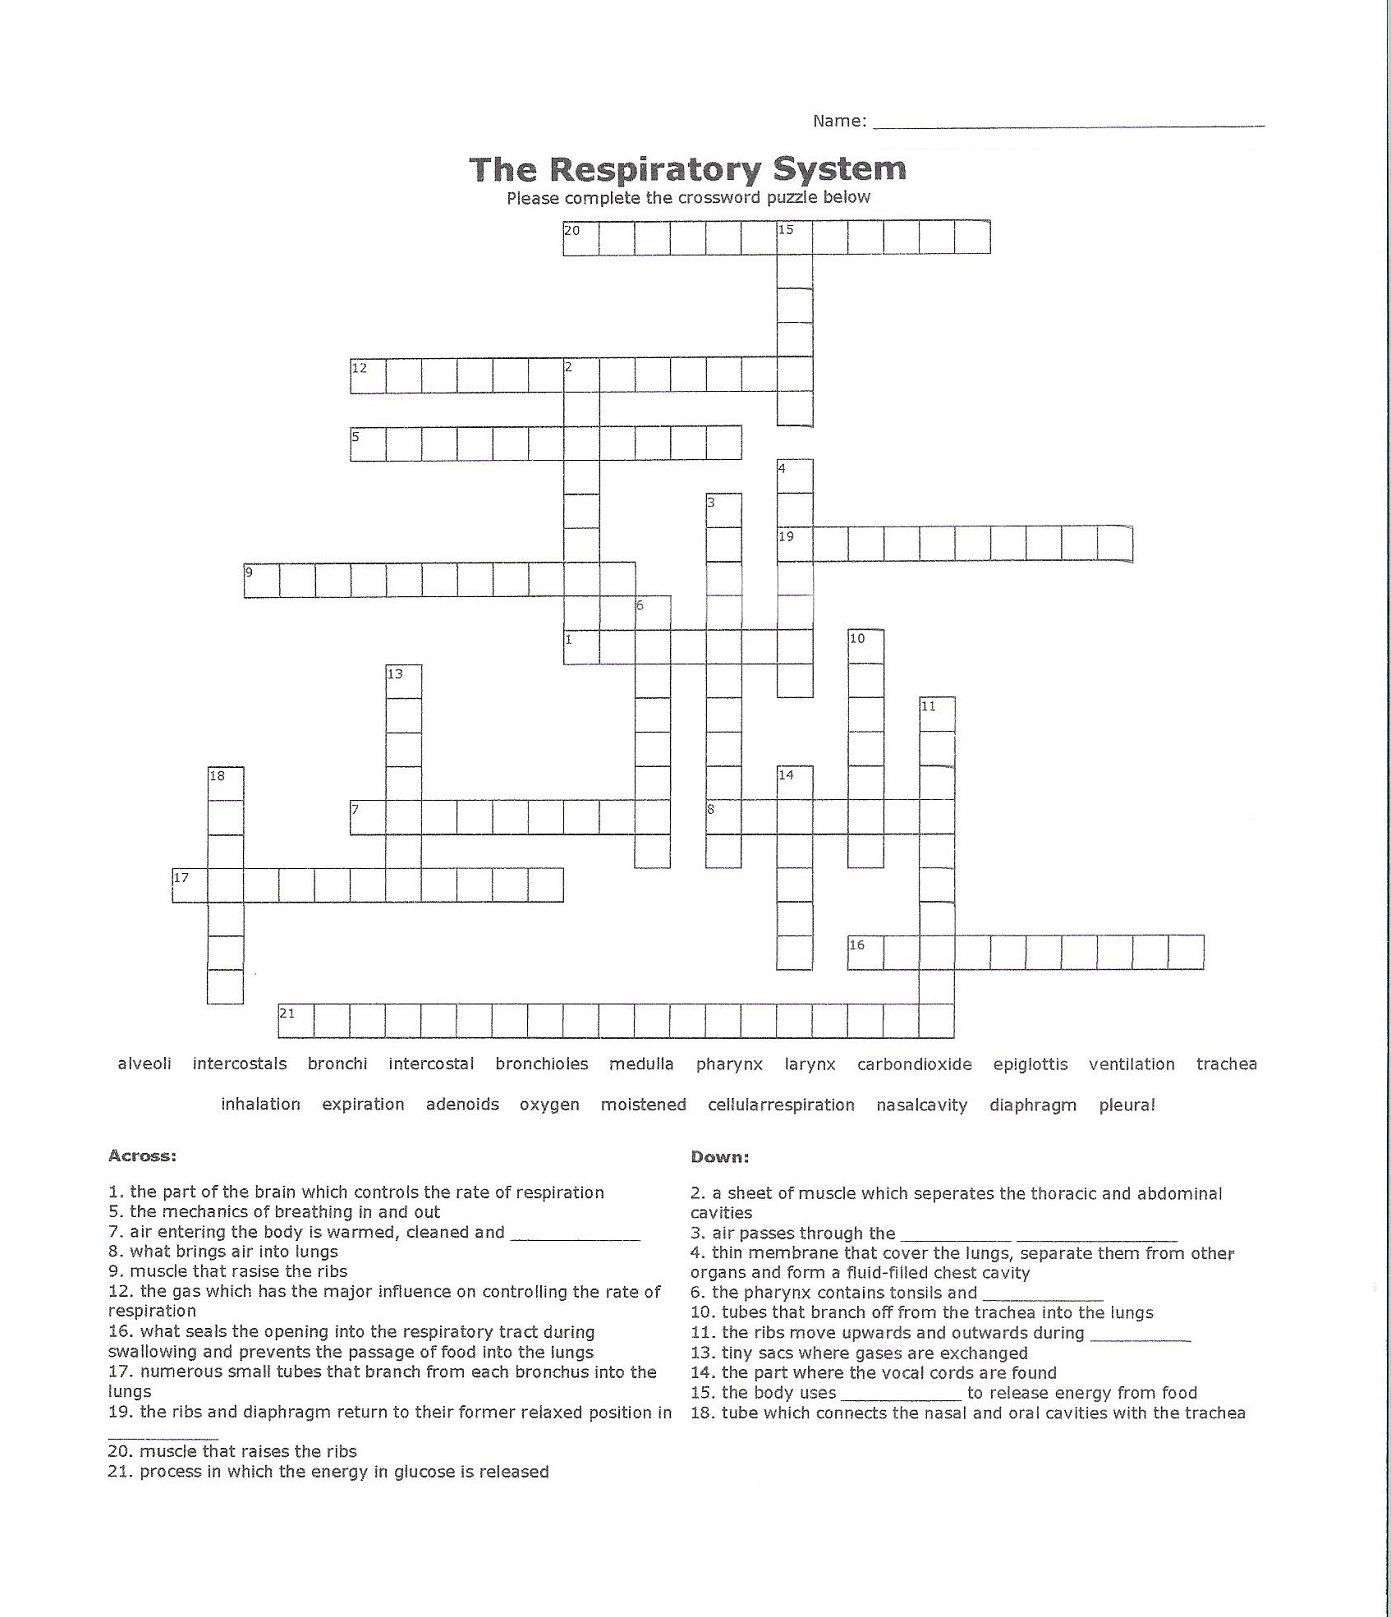 Respiratory System Crossword Puzzle